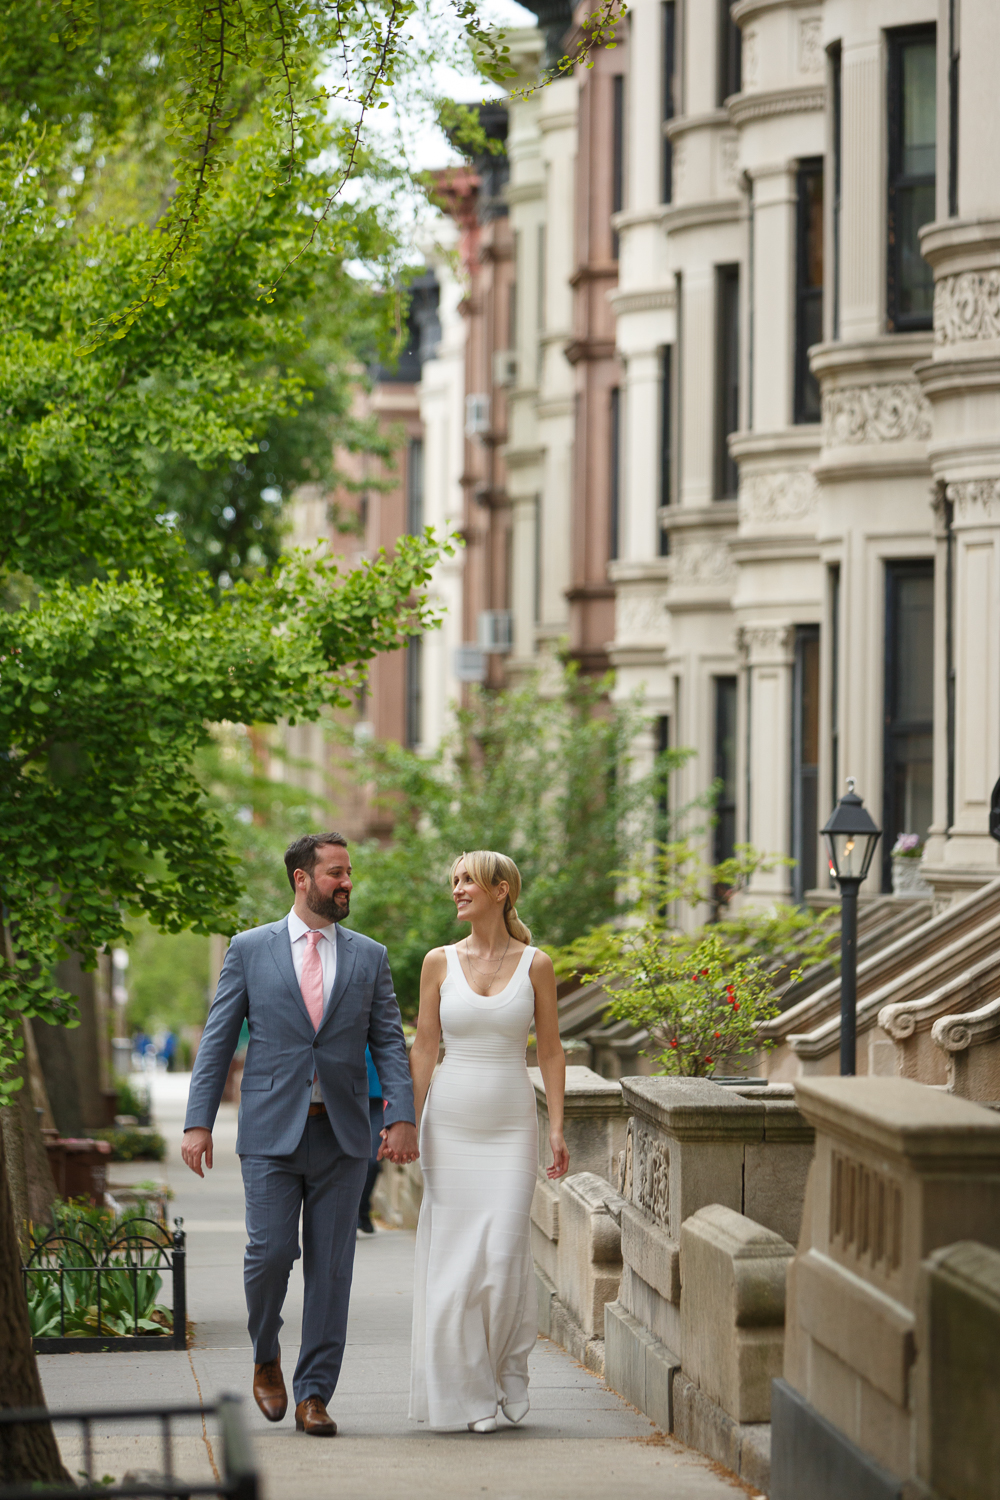 Brooklyn Wedding Photographer _ Jonathan Heisler _ 5112019 _019.jpg